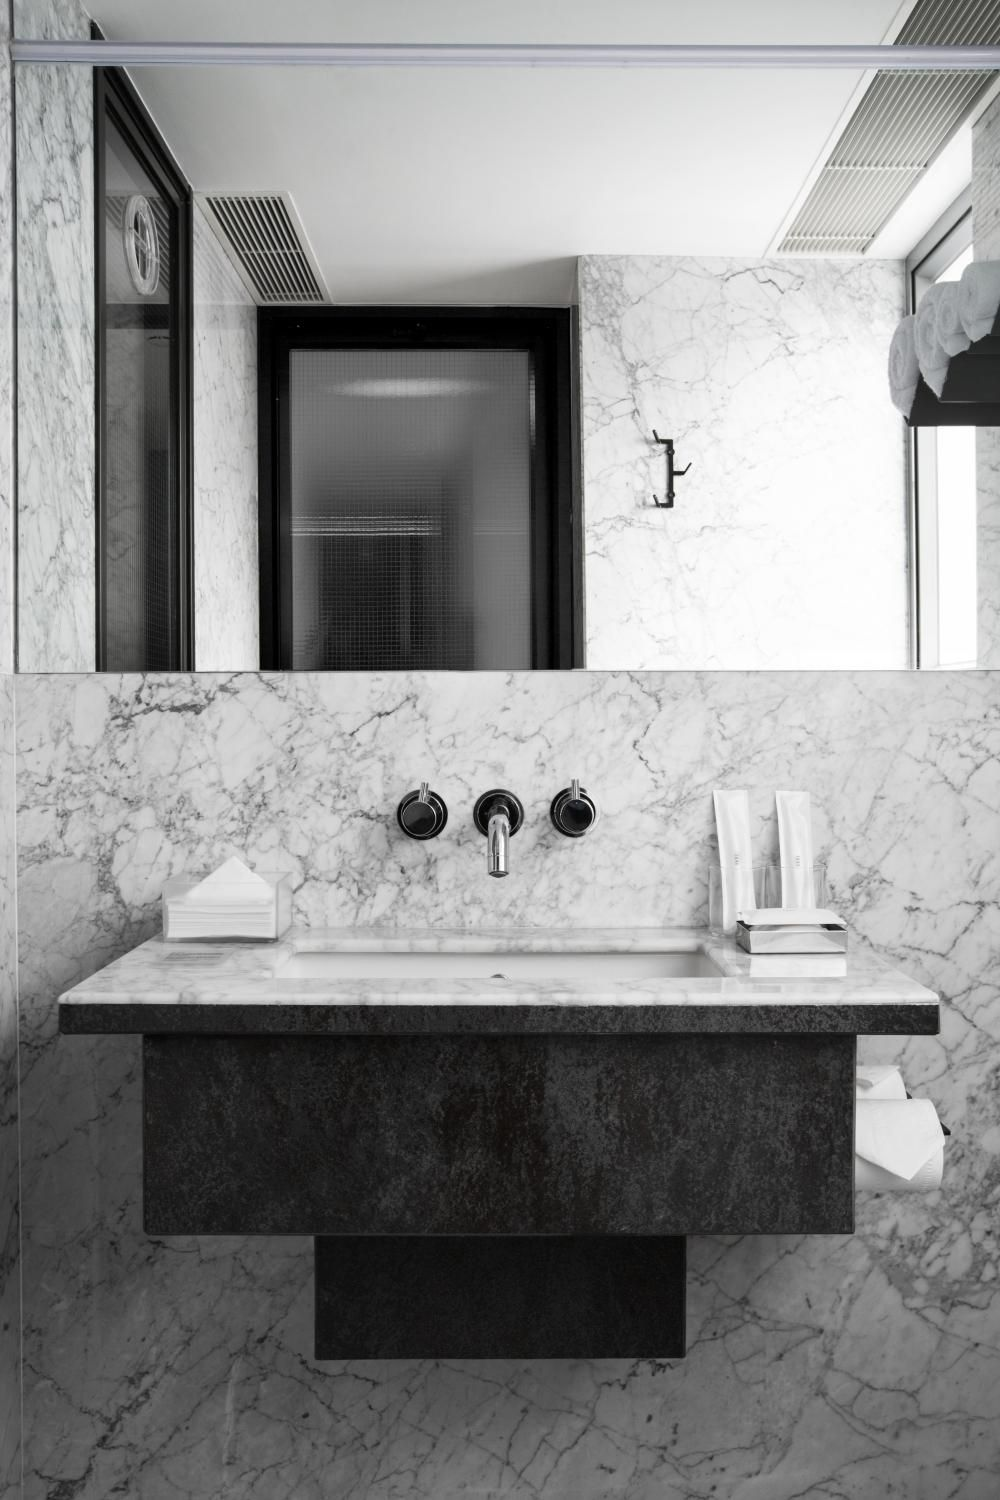 Bathroom - Hotel Tuve in Hong Kong by Design Systems | interiors ...